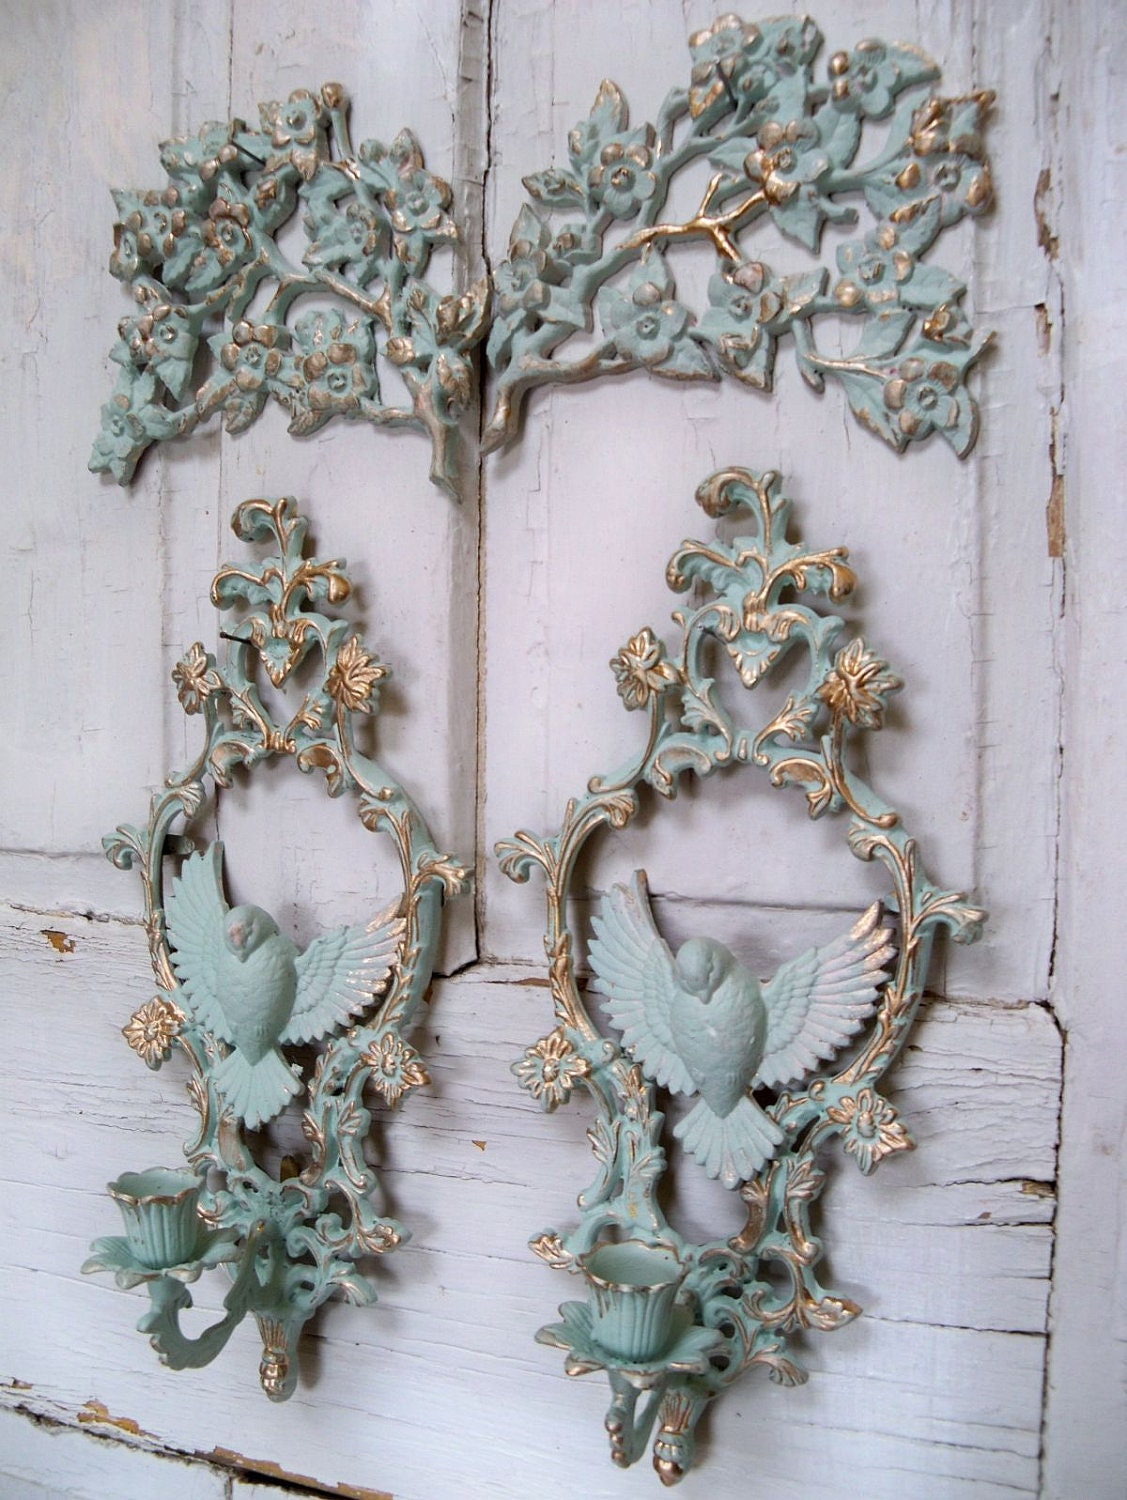 Aqua Vintage Wall Grouping With Gold Accents Shabby Chic Wall